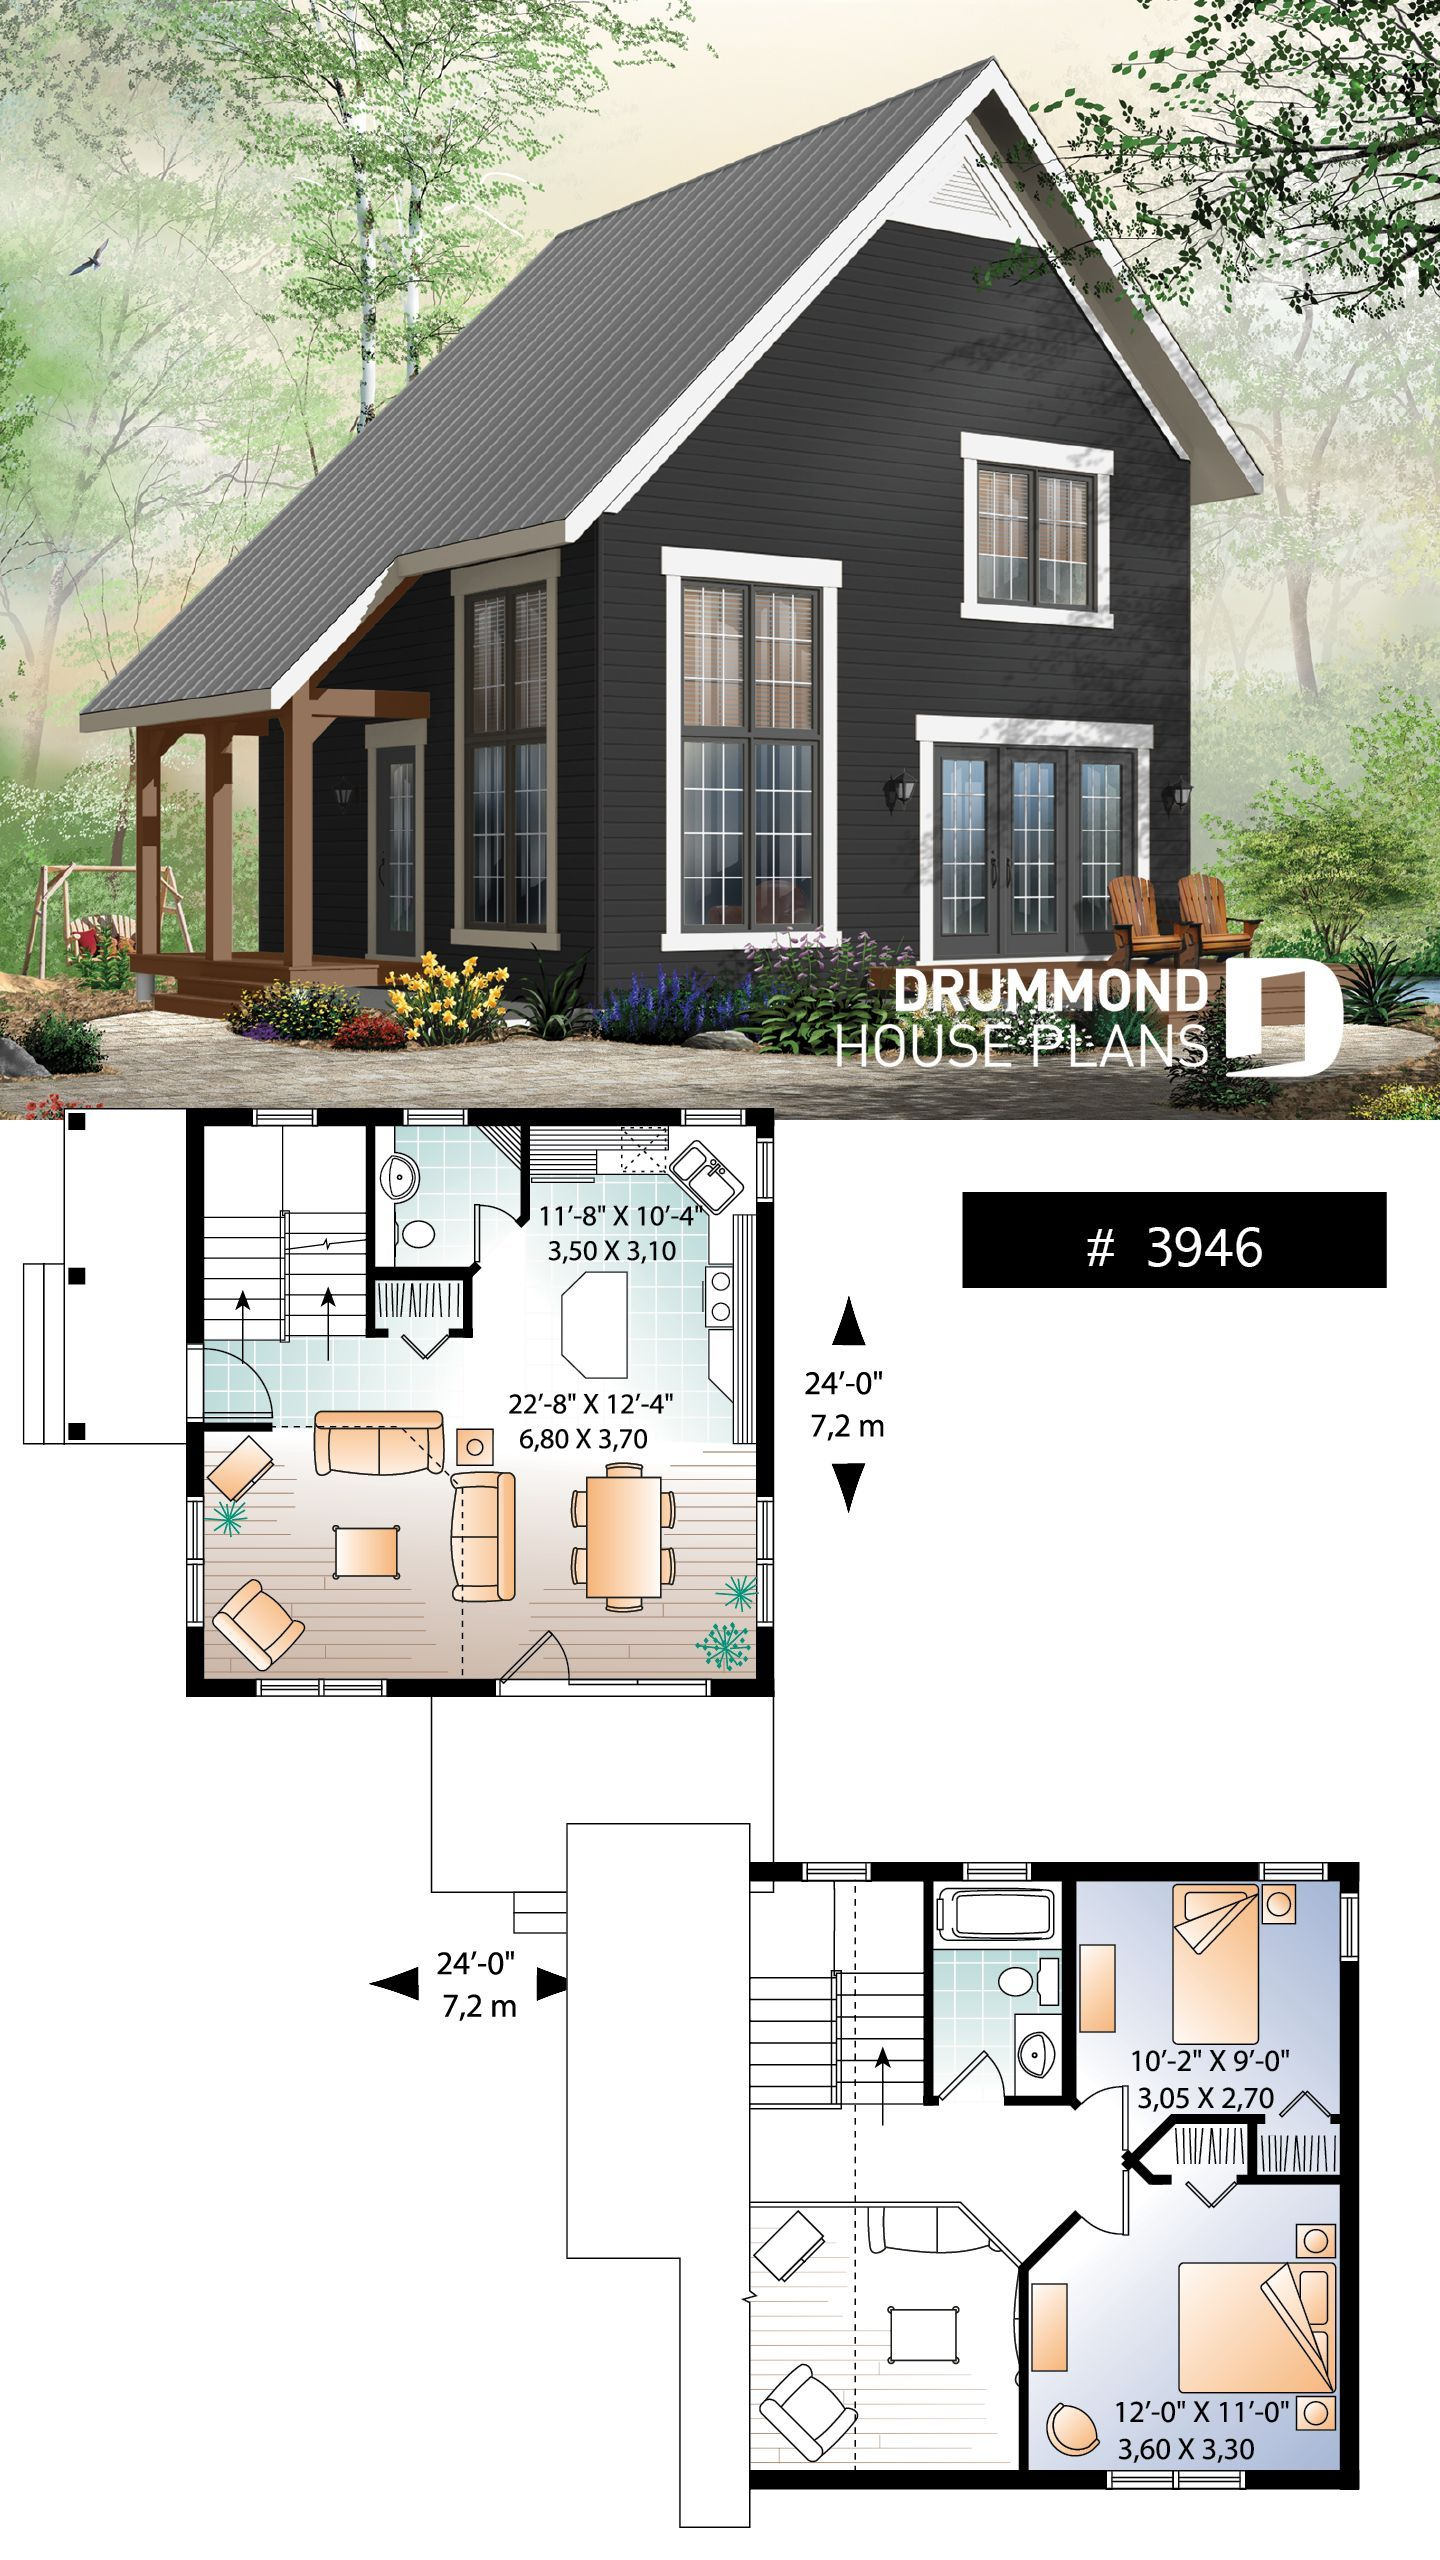 2 bedroom transitional style cottage design, with mezzanine and cathedral ceiling, affordable construction